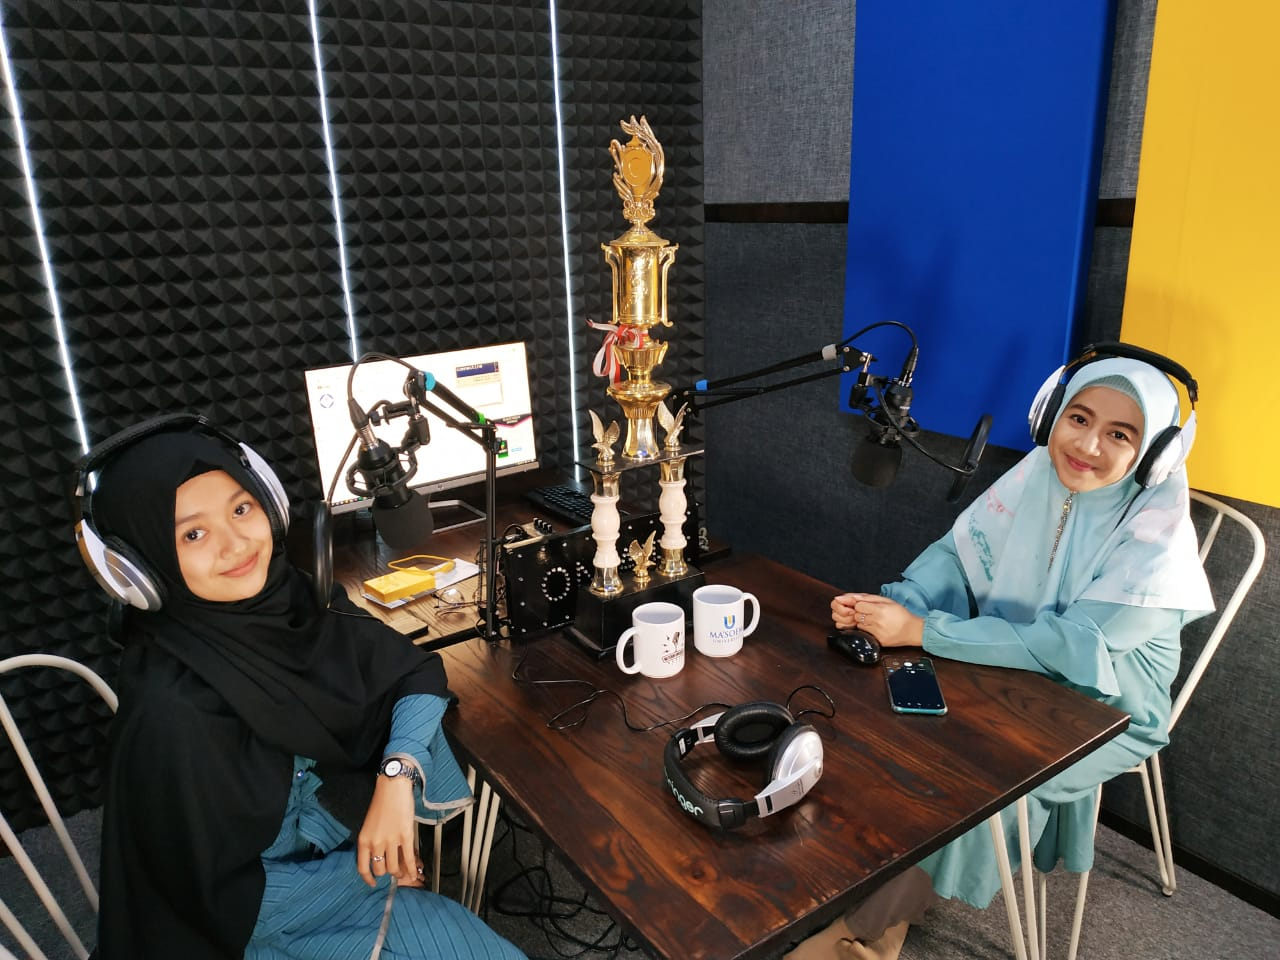 Interview With Rispa / Mahasiswa Jurusan Bahasa Inggris (Juara ke-2 Speech Contest Tingkat Nasional)